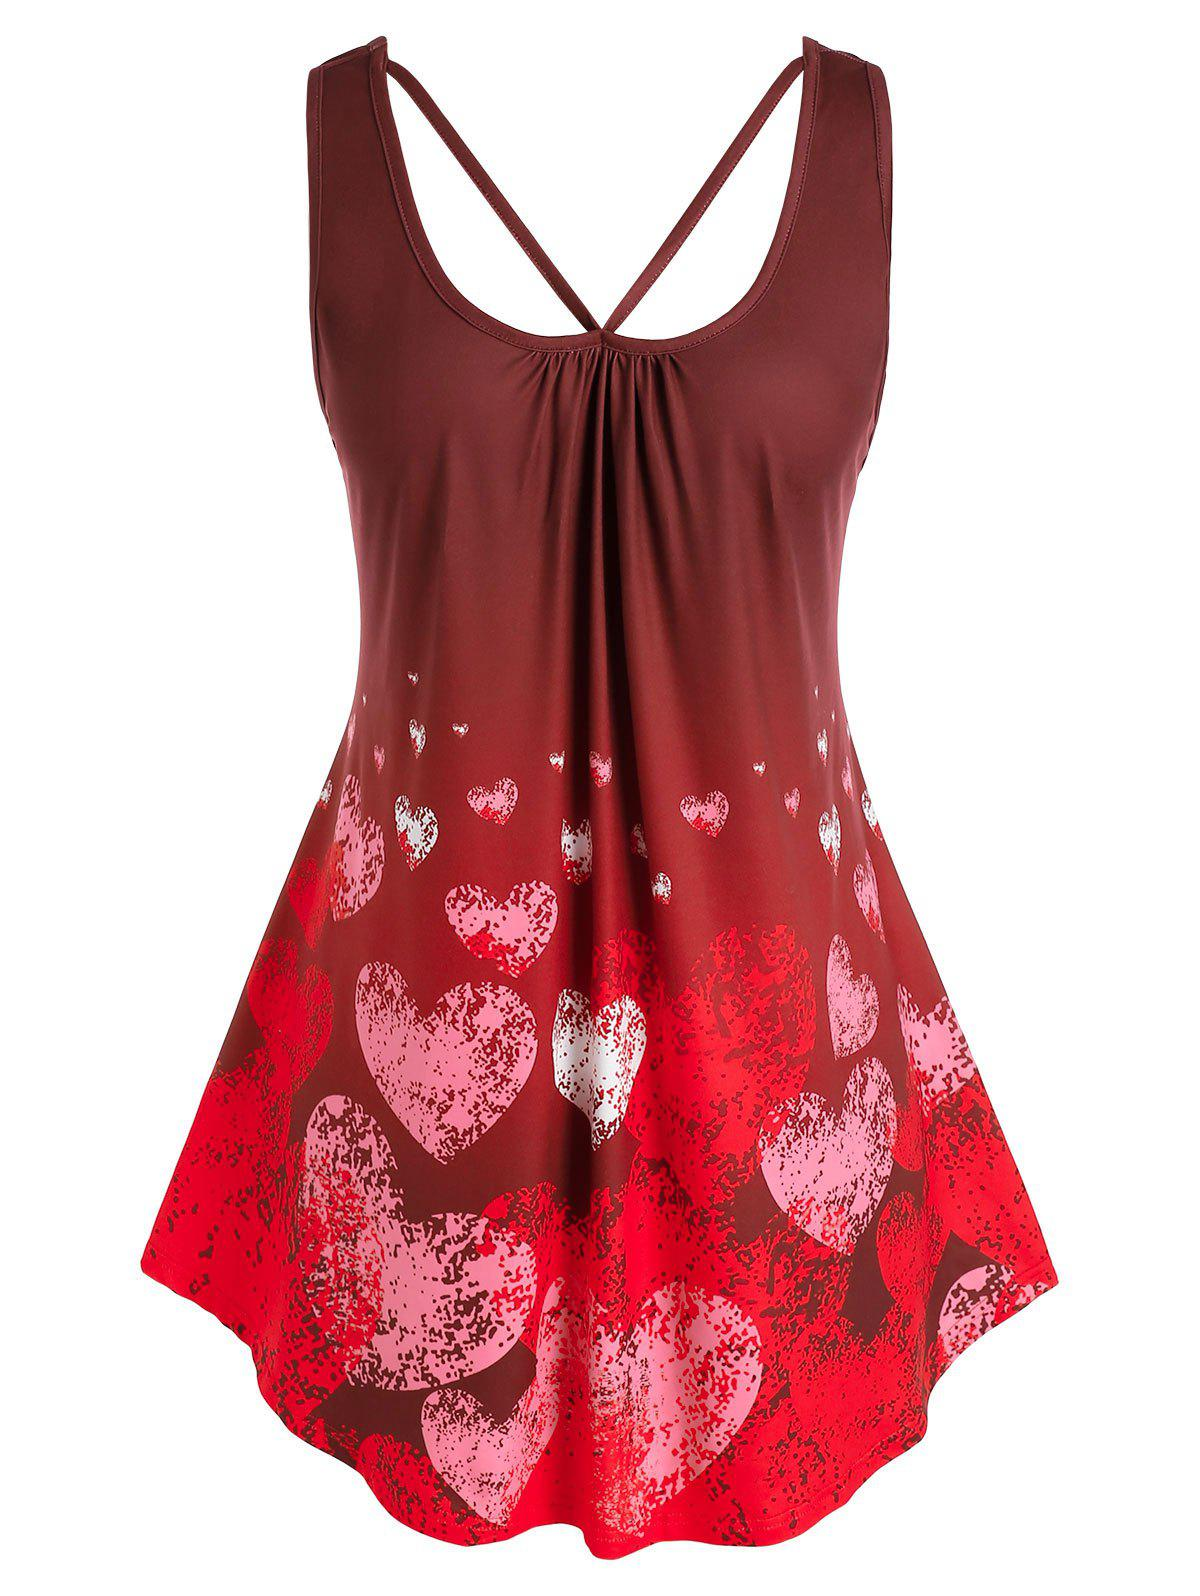 Plus Size Heart Print Valentine Tank Top - RED 3X